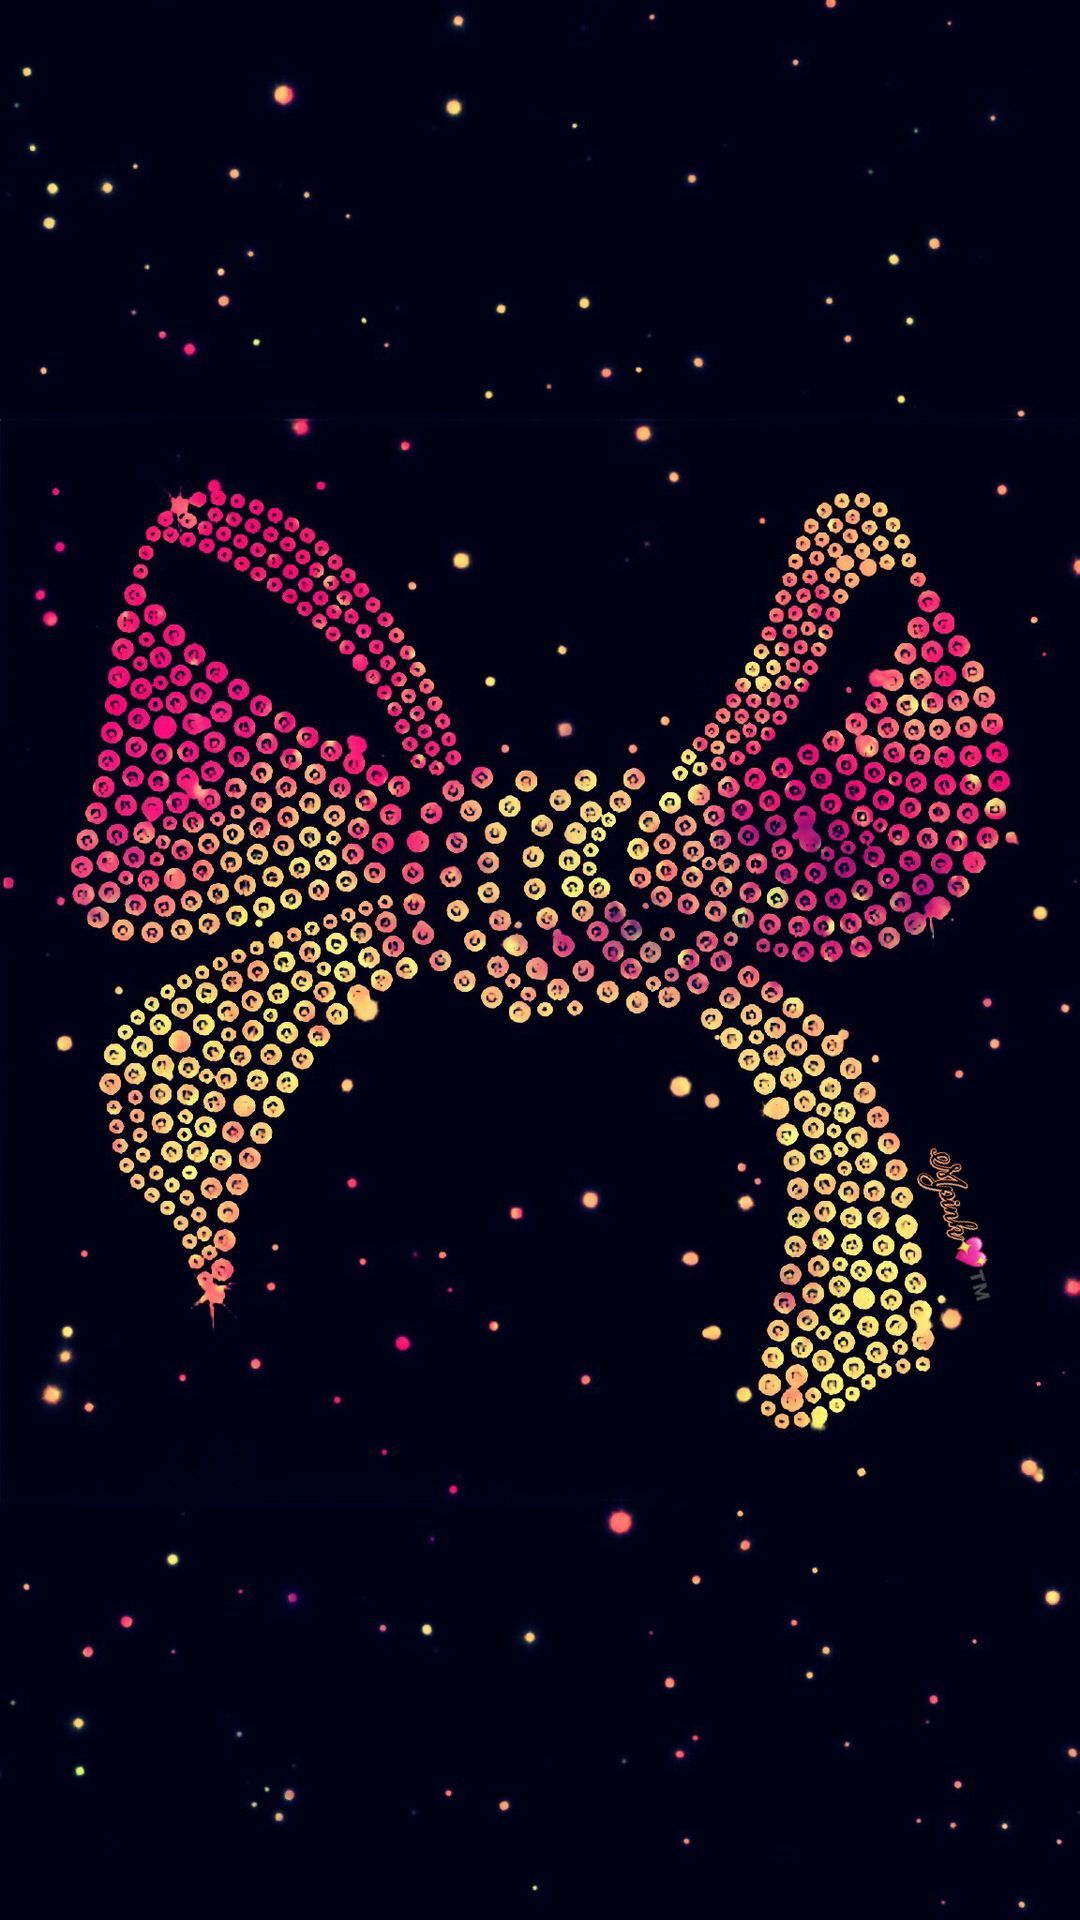 Diamond Girly Wallpaper In 2020 Bow Wallpaper Iphone Bow Wallpaper Pink And Black Wallpaper